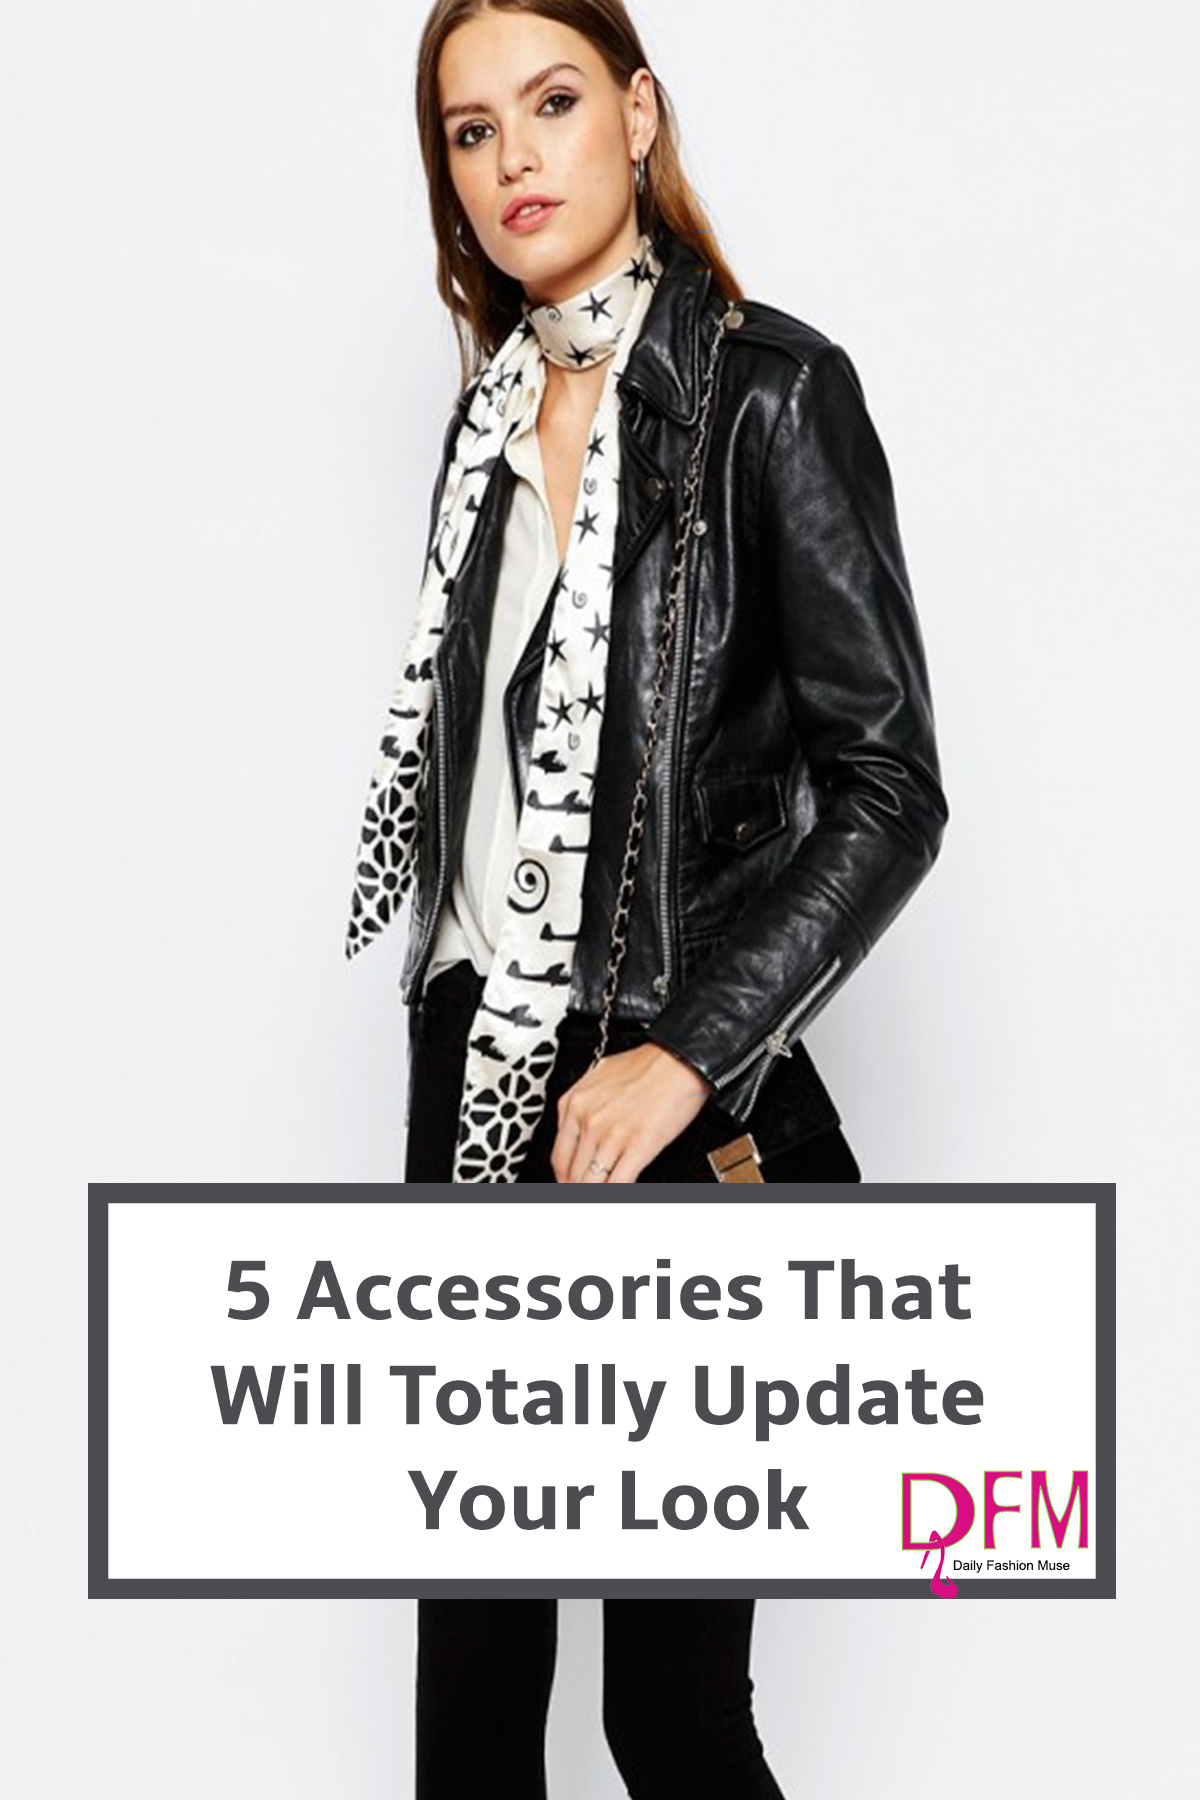 If you want to update your look without breaking the bank, try using these 5 accessories to give your look a whole new attitude.